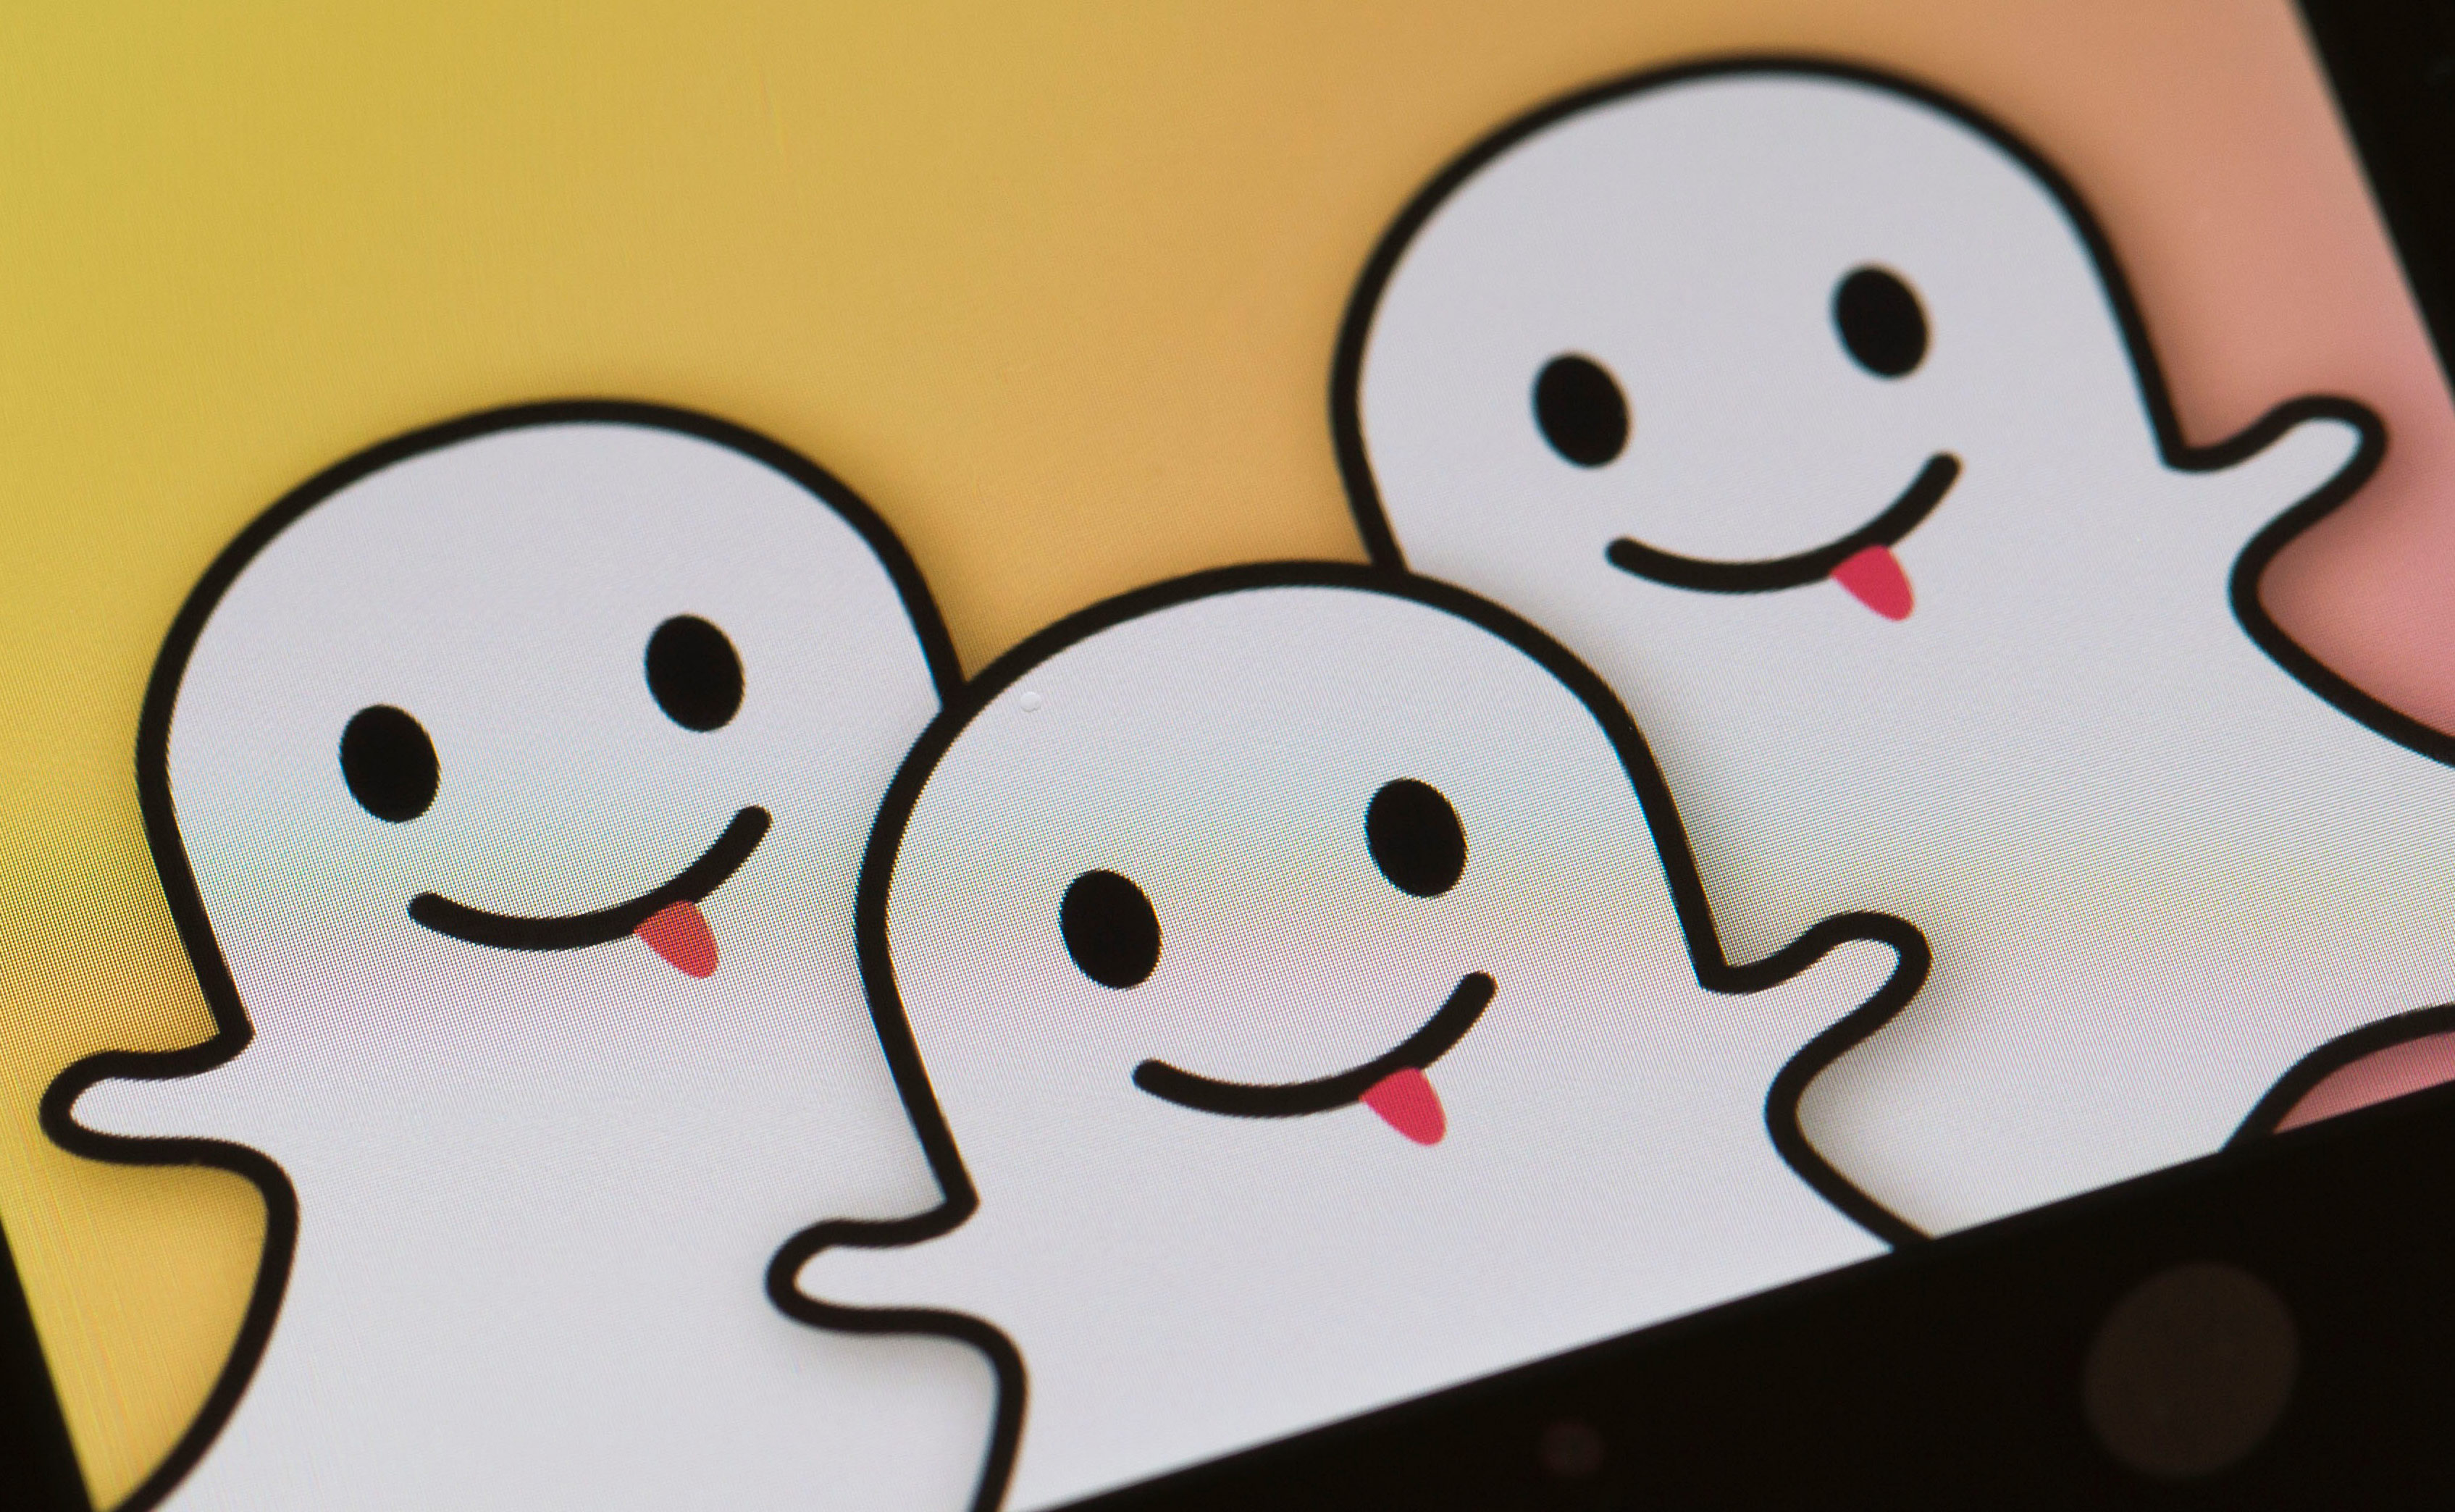 Snapchat Passes Twitter in Daily Usage